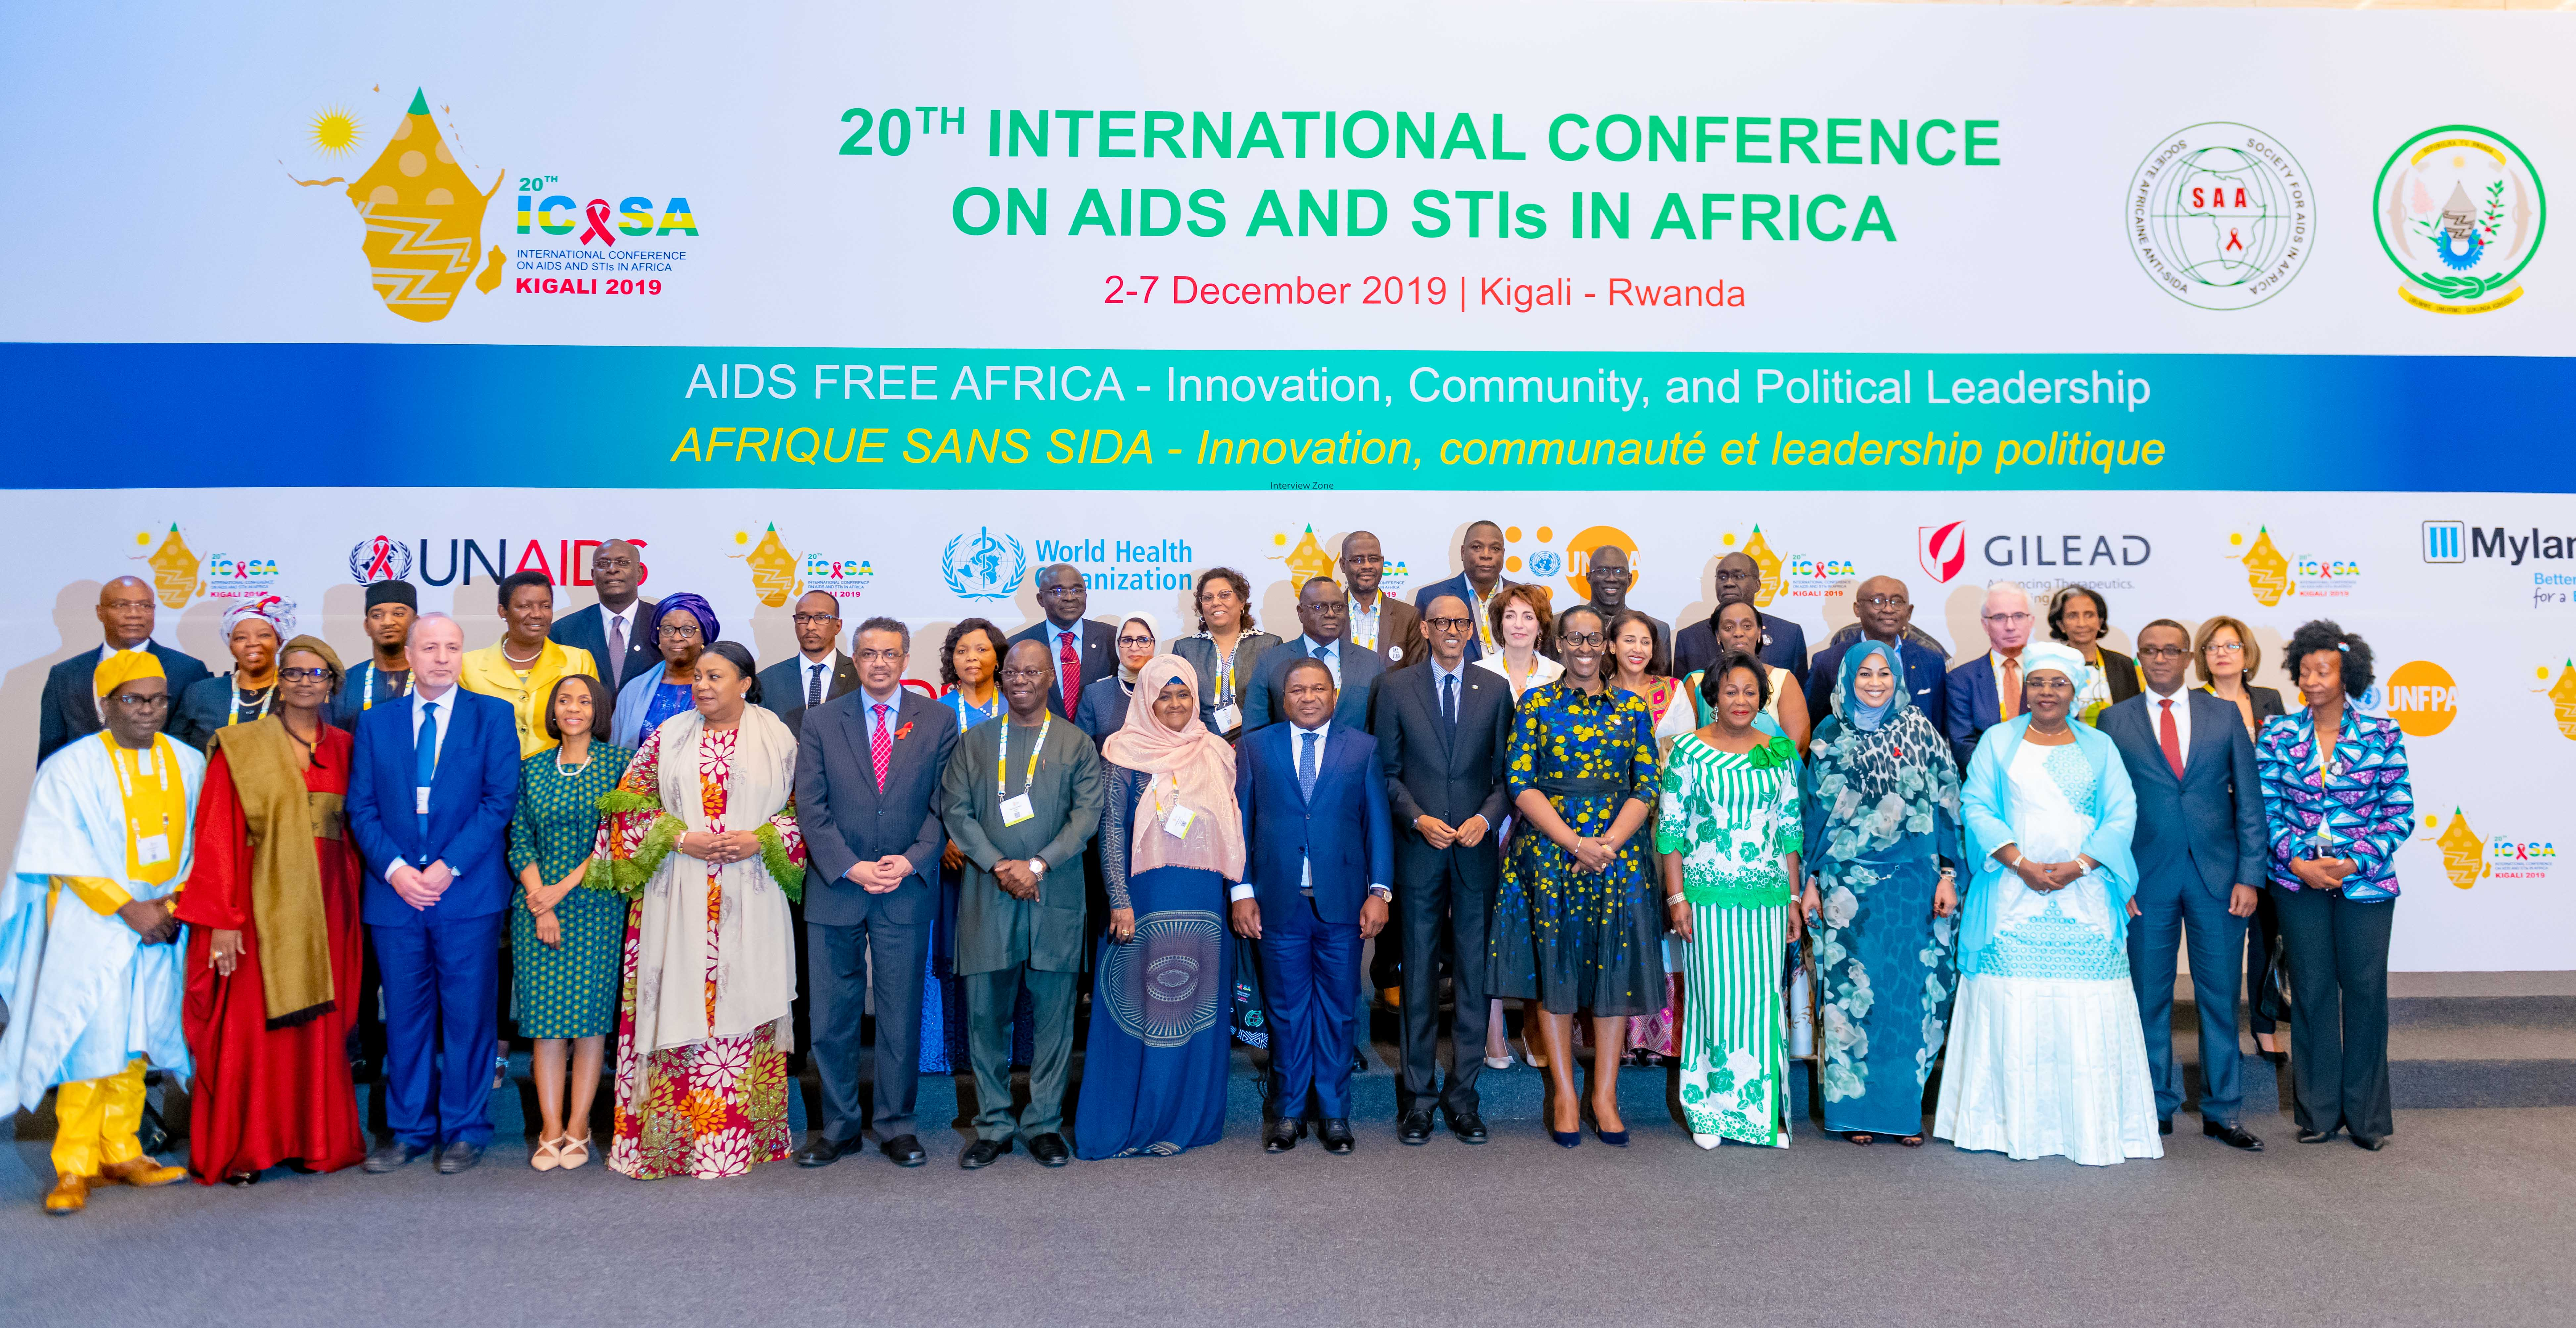 GROUP PHOTO OF ICASA 2019 OPENING CEREMONY SPEAKERS AND INVITED DIGNITARIES